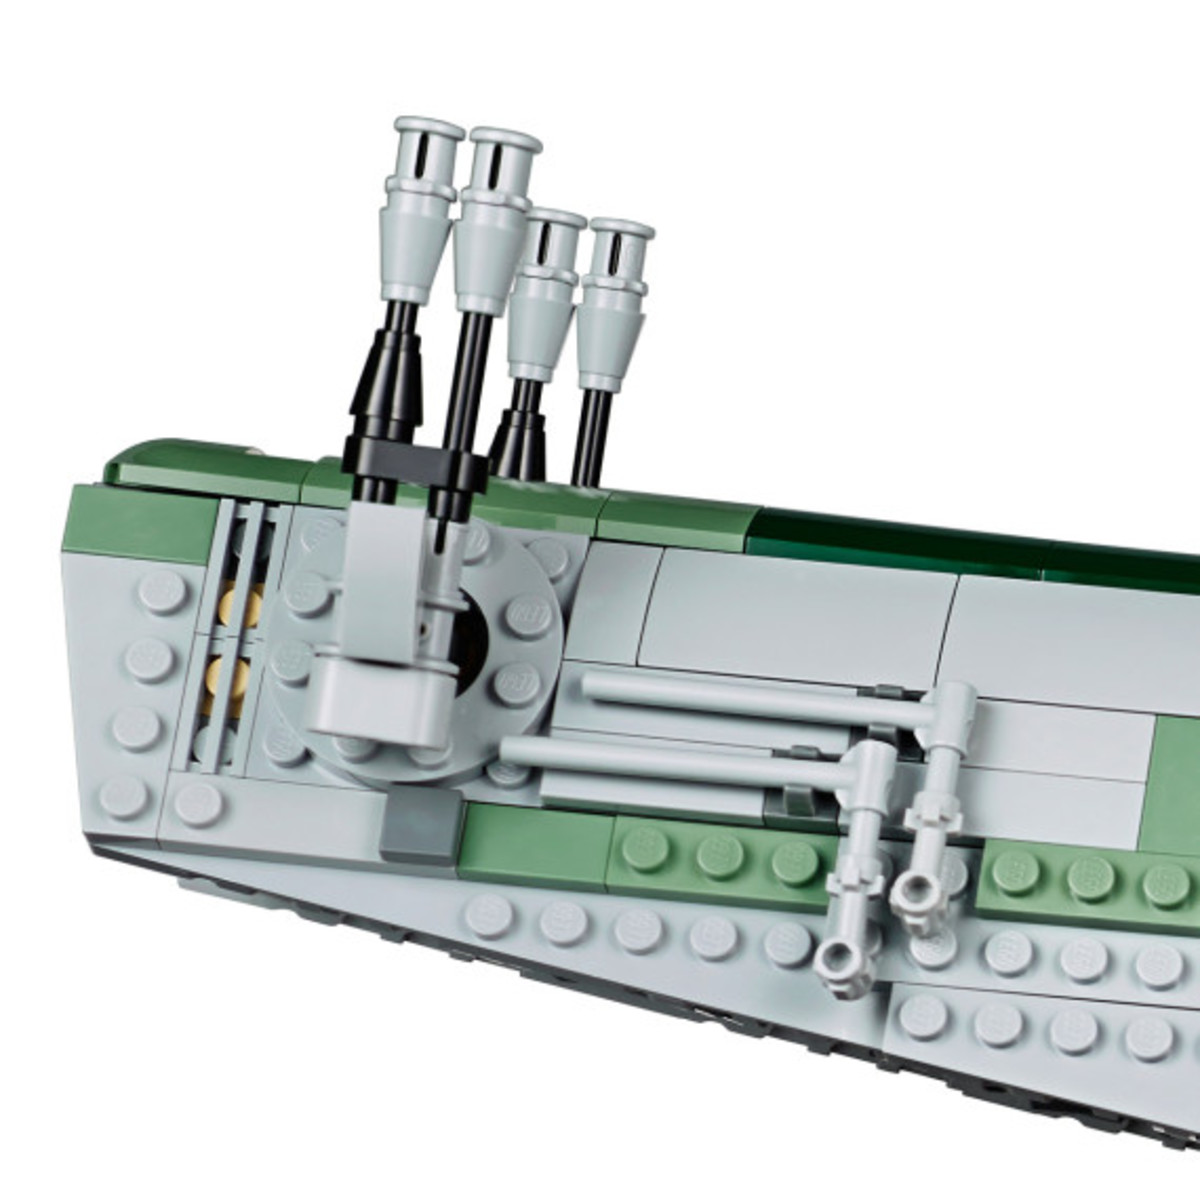 Star Wars x LEGO Ultimate Collector's Series: Boba Fett's Slave I Kit | Release Info - 12